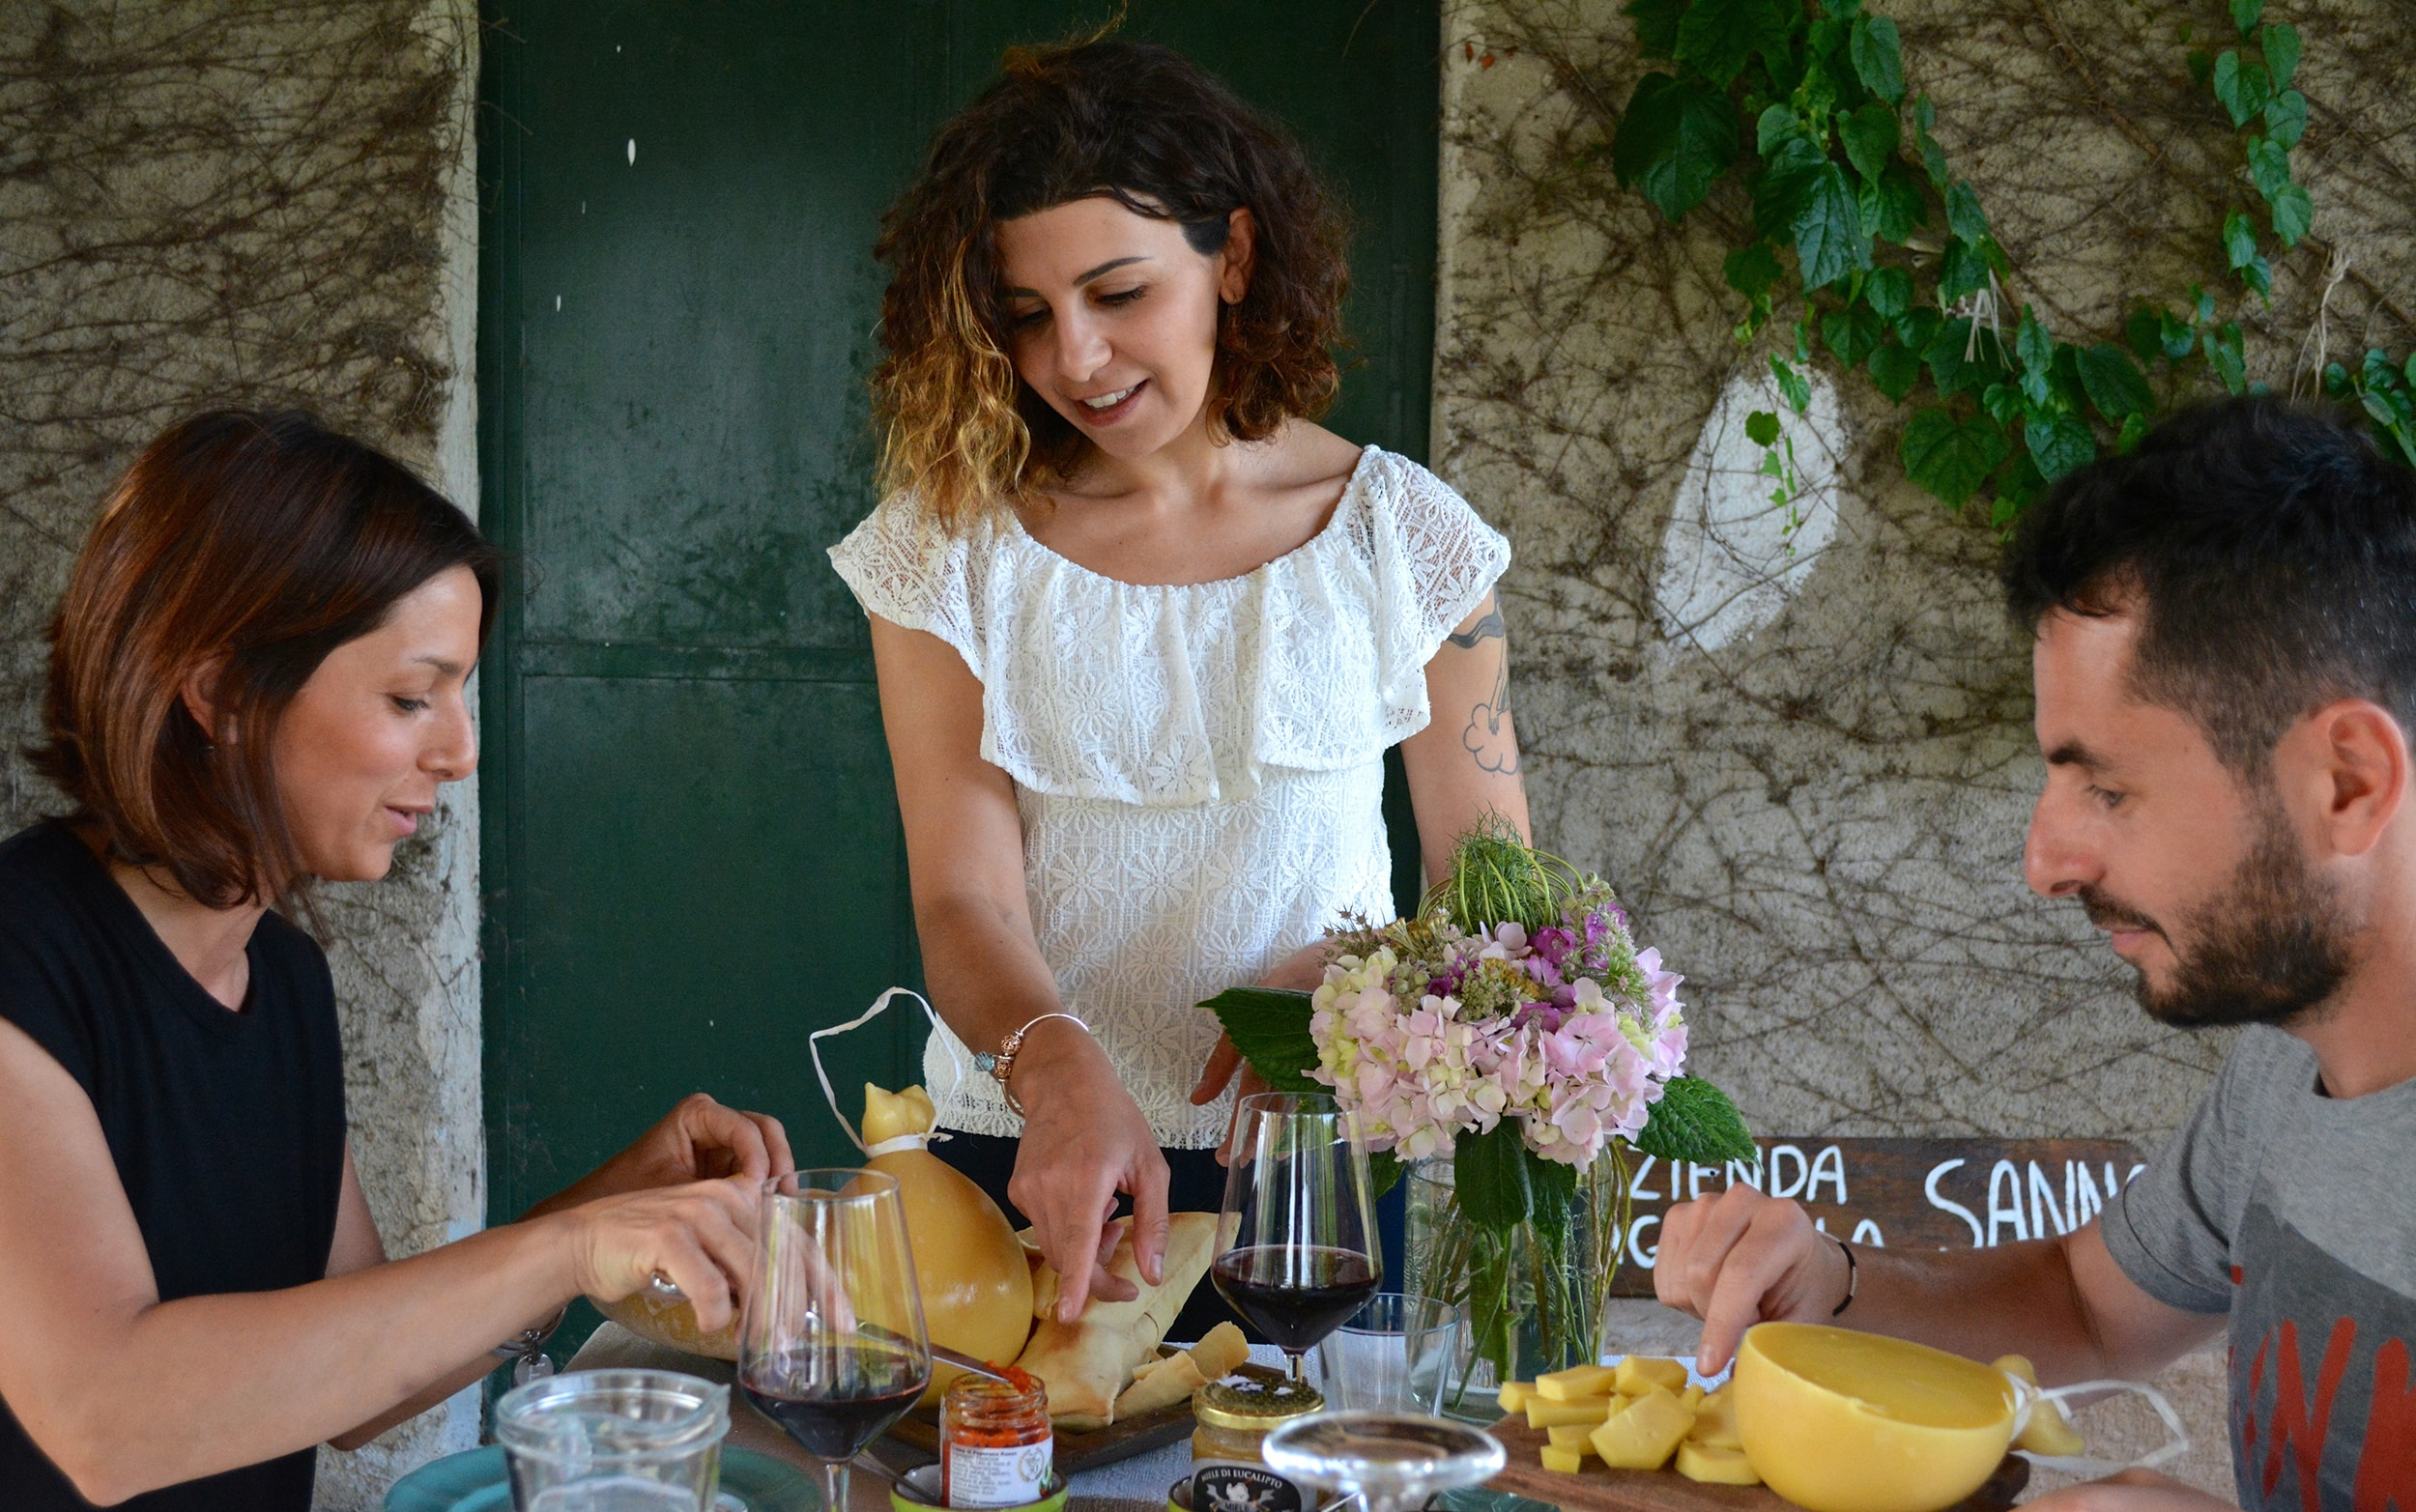 Italian Hosts are Global Leaders for Food Experiences on Airbnb